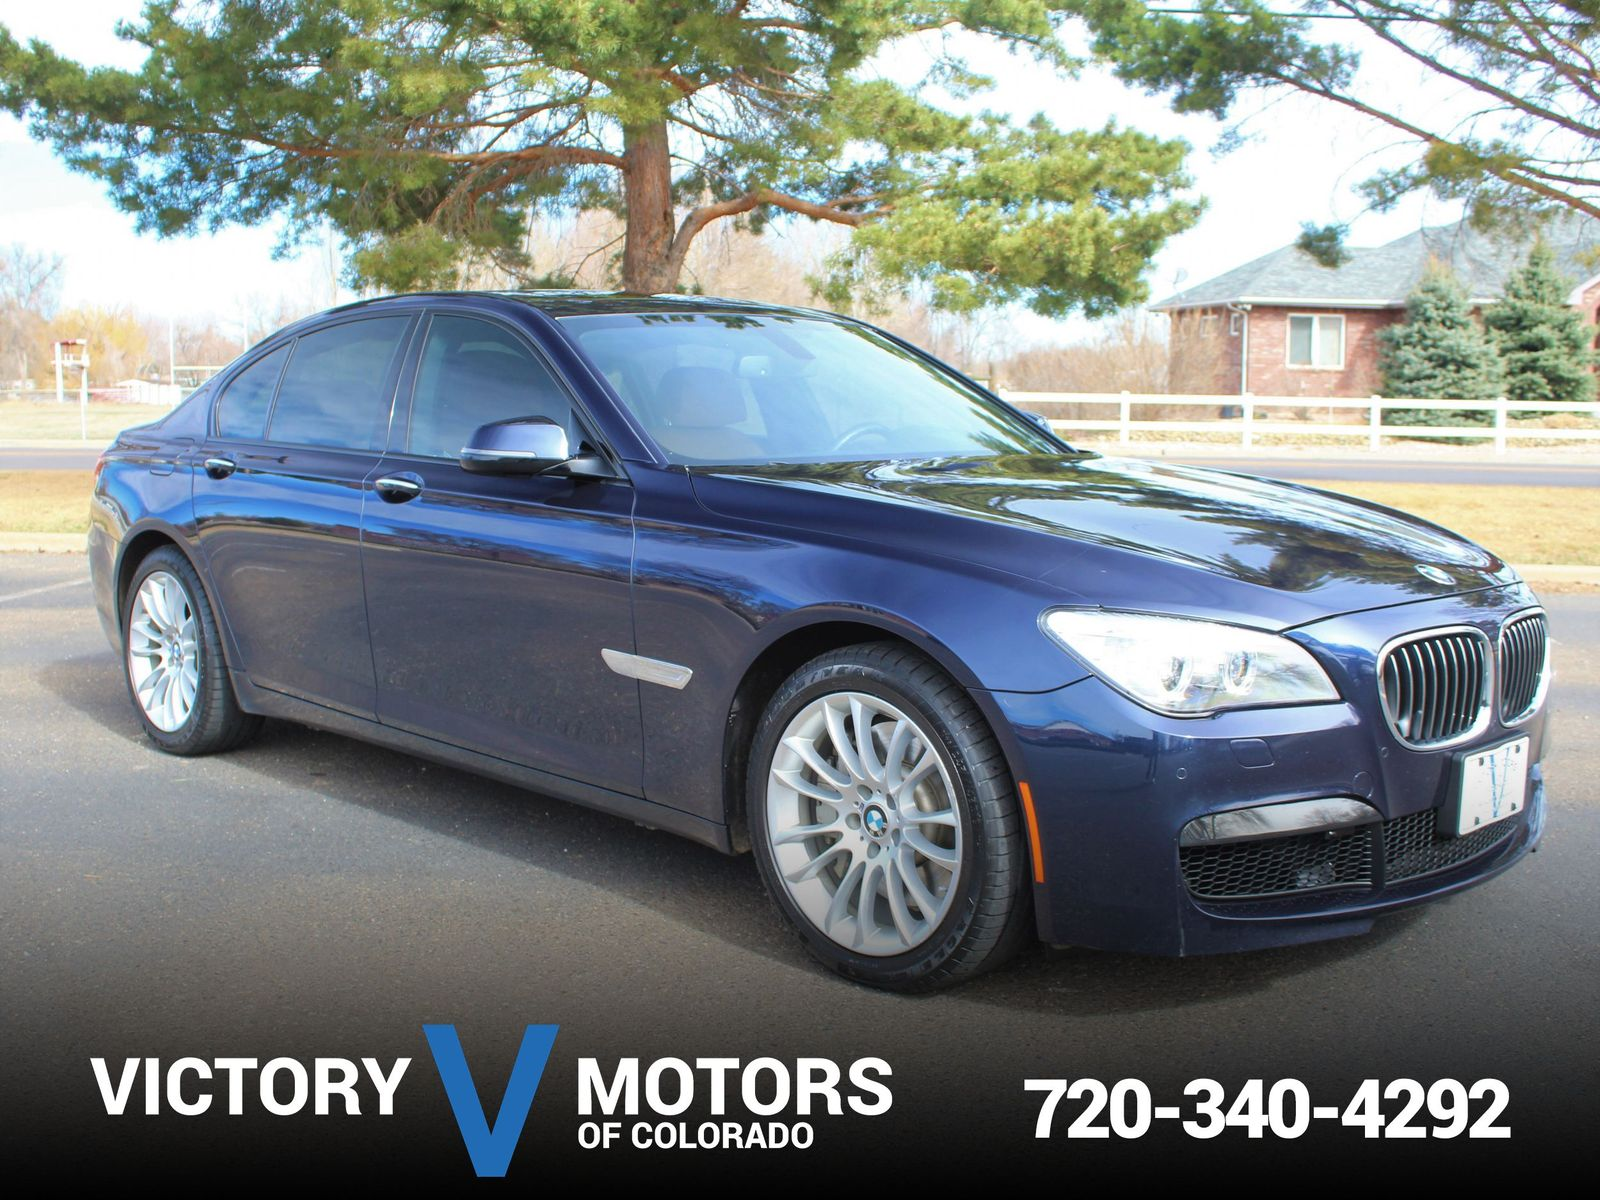 2014 BMW 750i xDrive M Sport Package   Victory Motors of ...